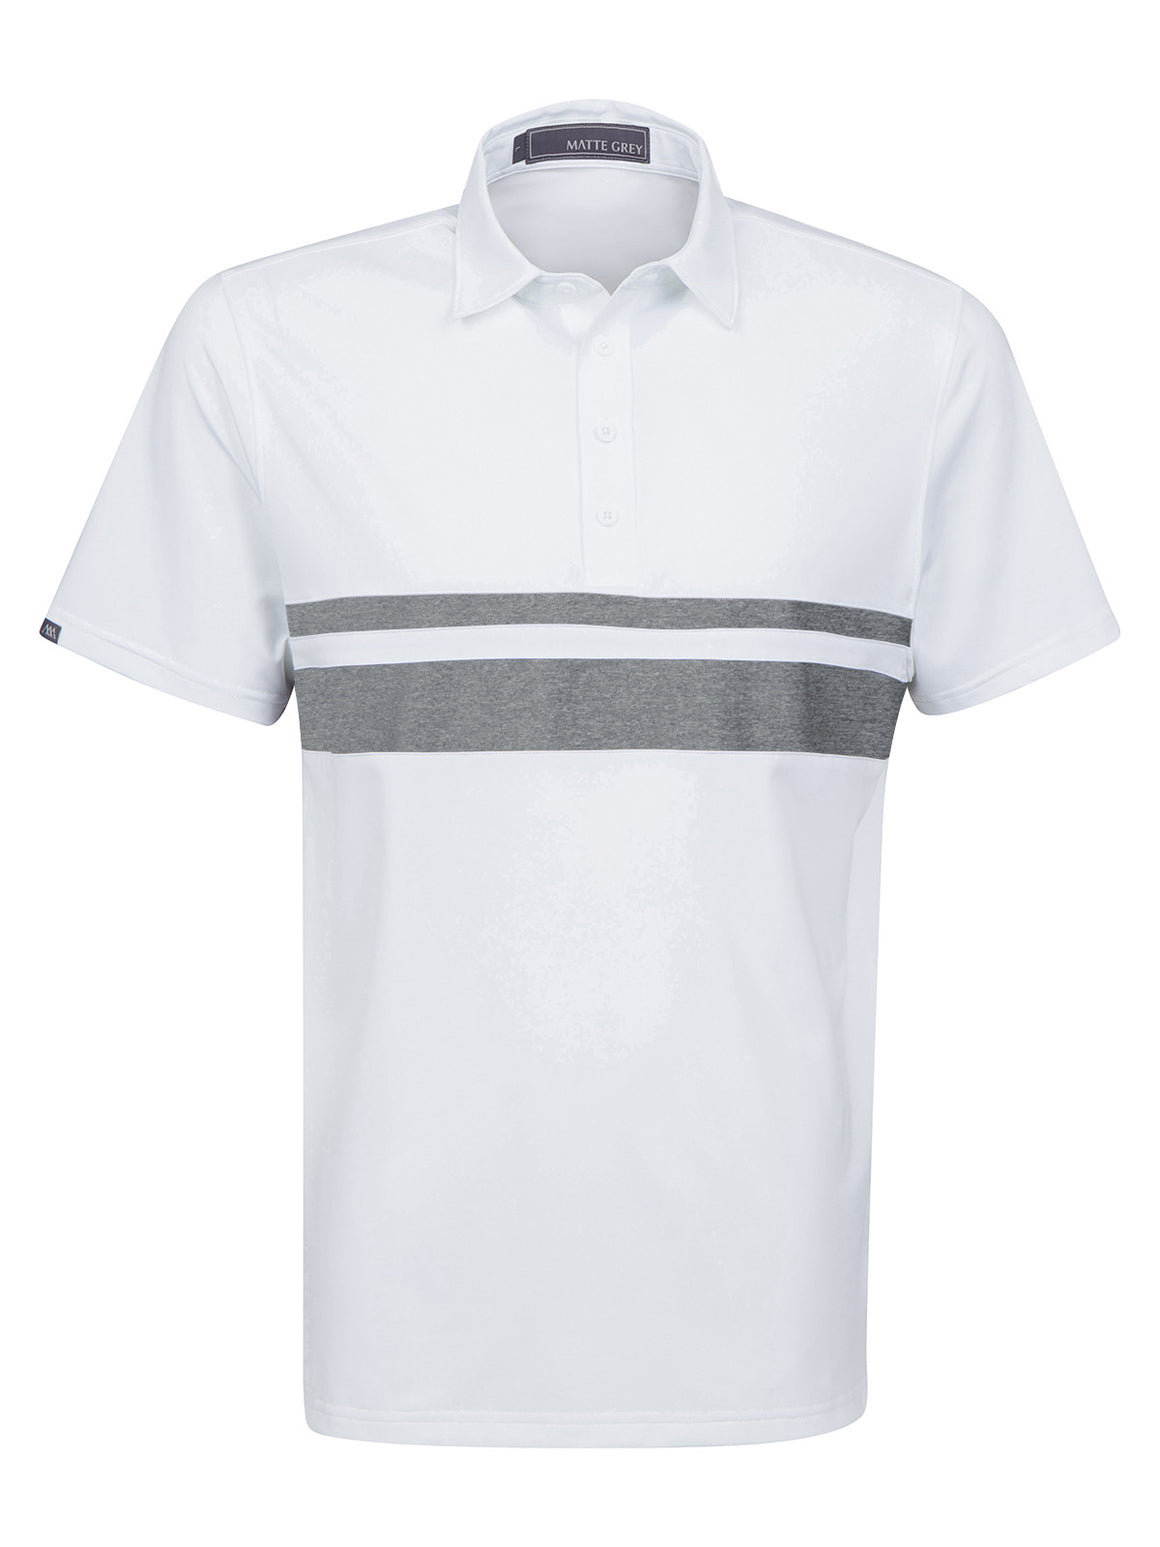 Anders - White (Charcoal Heather)